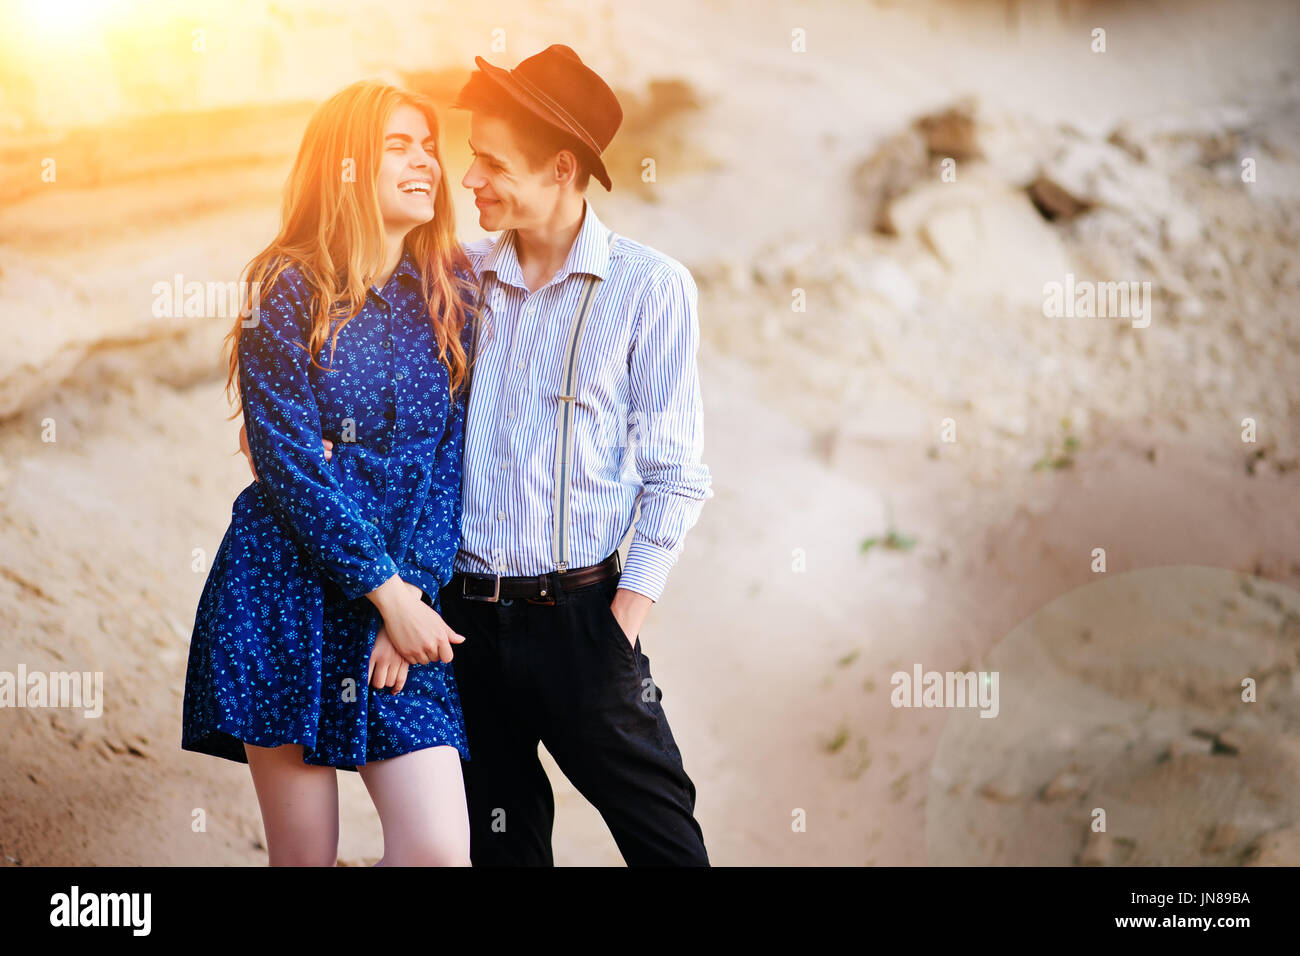 An attractive man hugs a beautiful woman in a blue dress in the middle of a sandy canyon. Lovers are happy, they are smiling to each other. - Stock Image